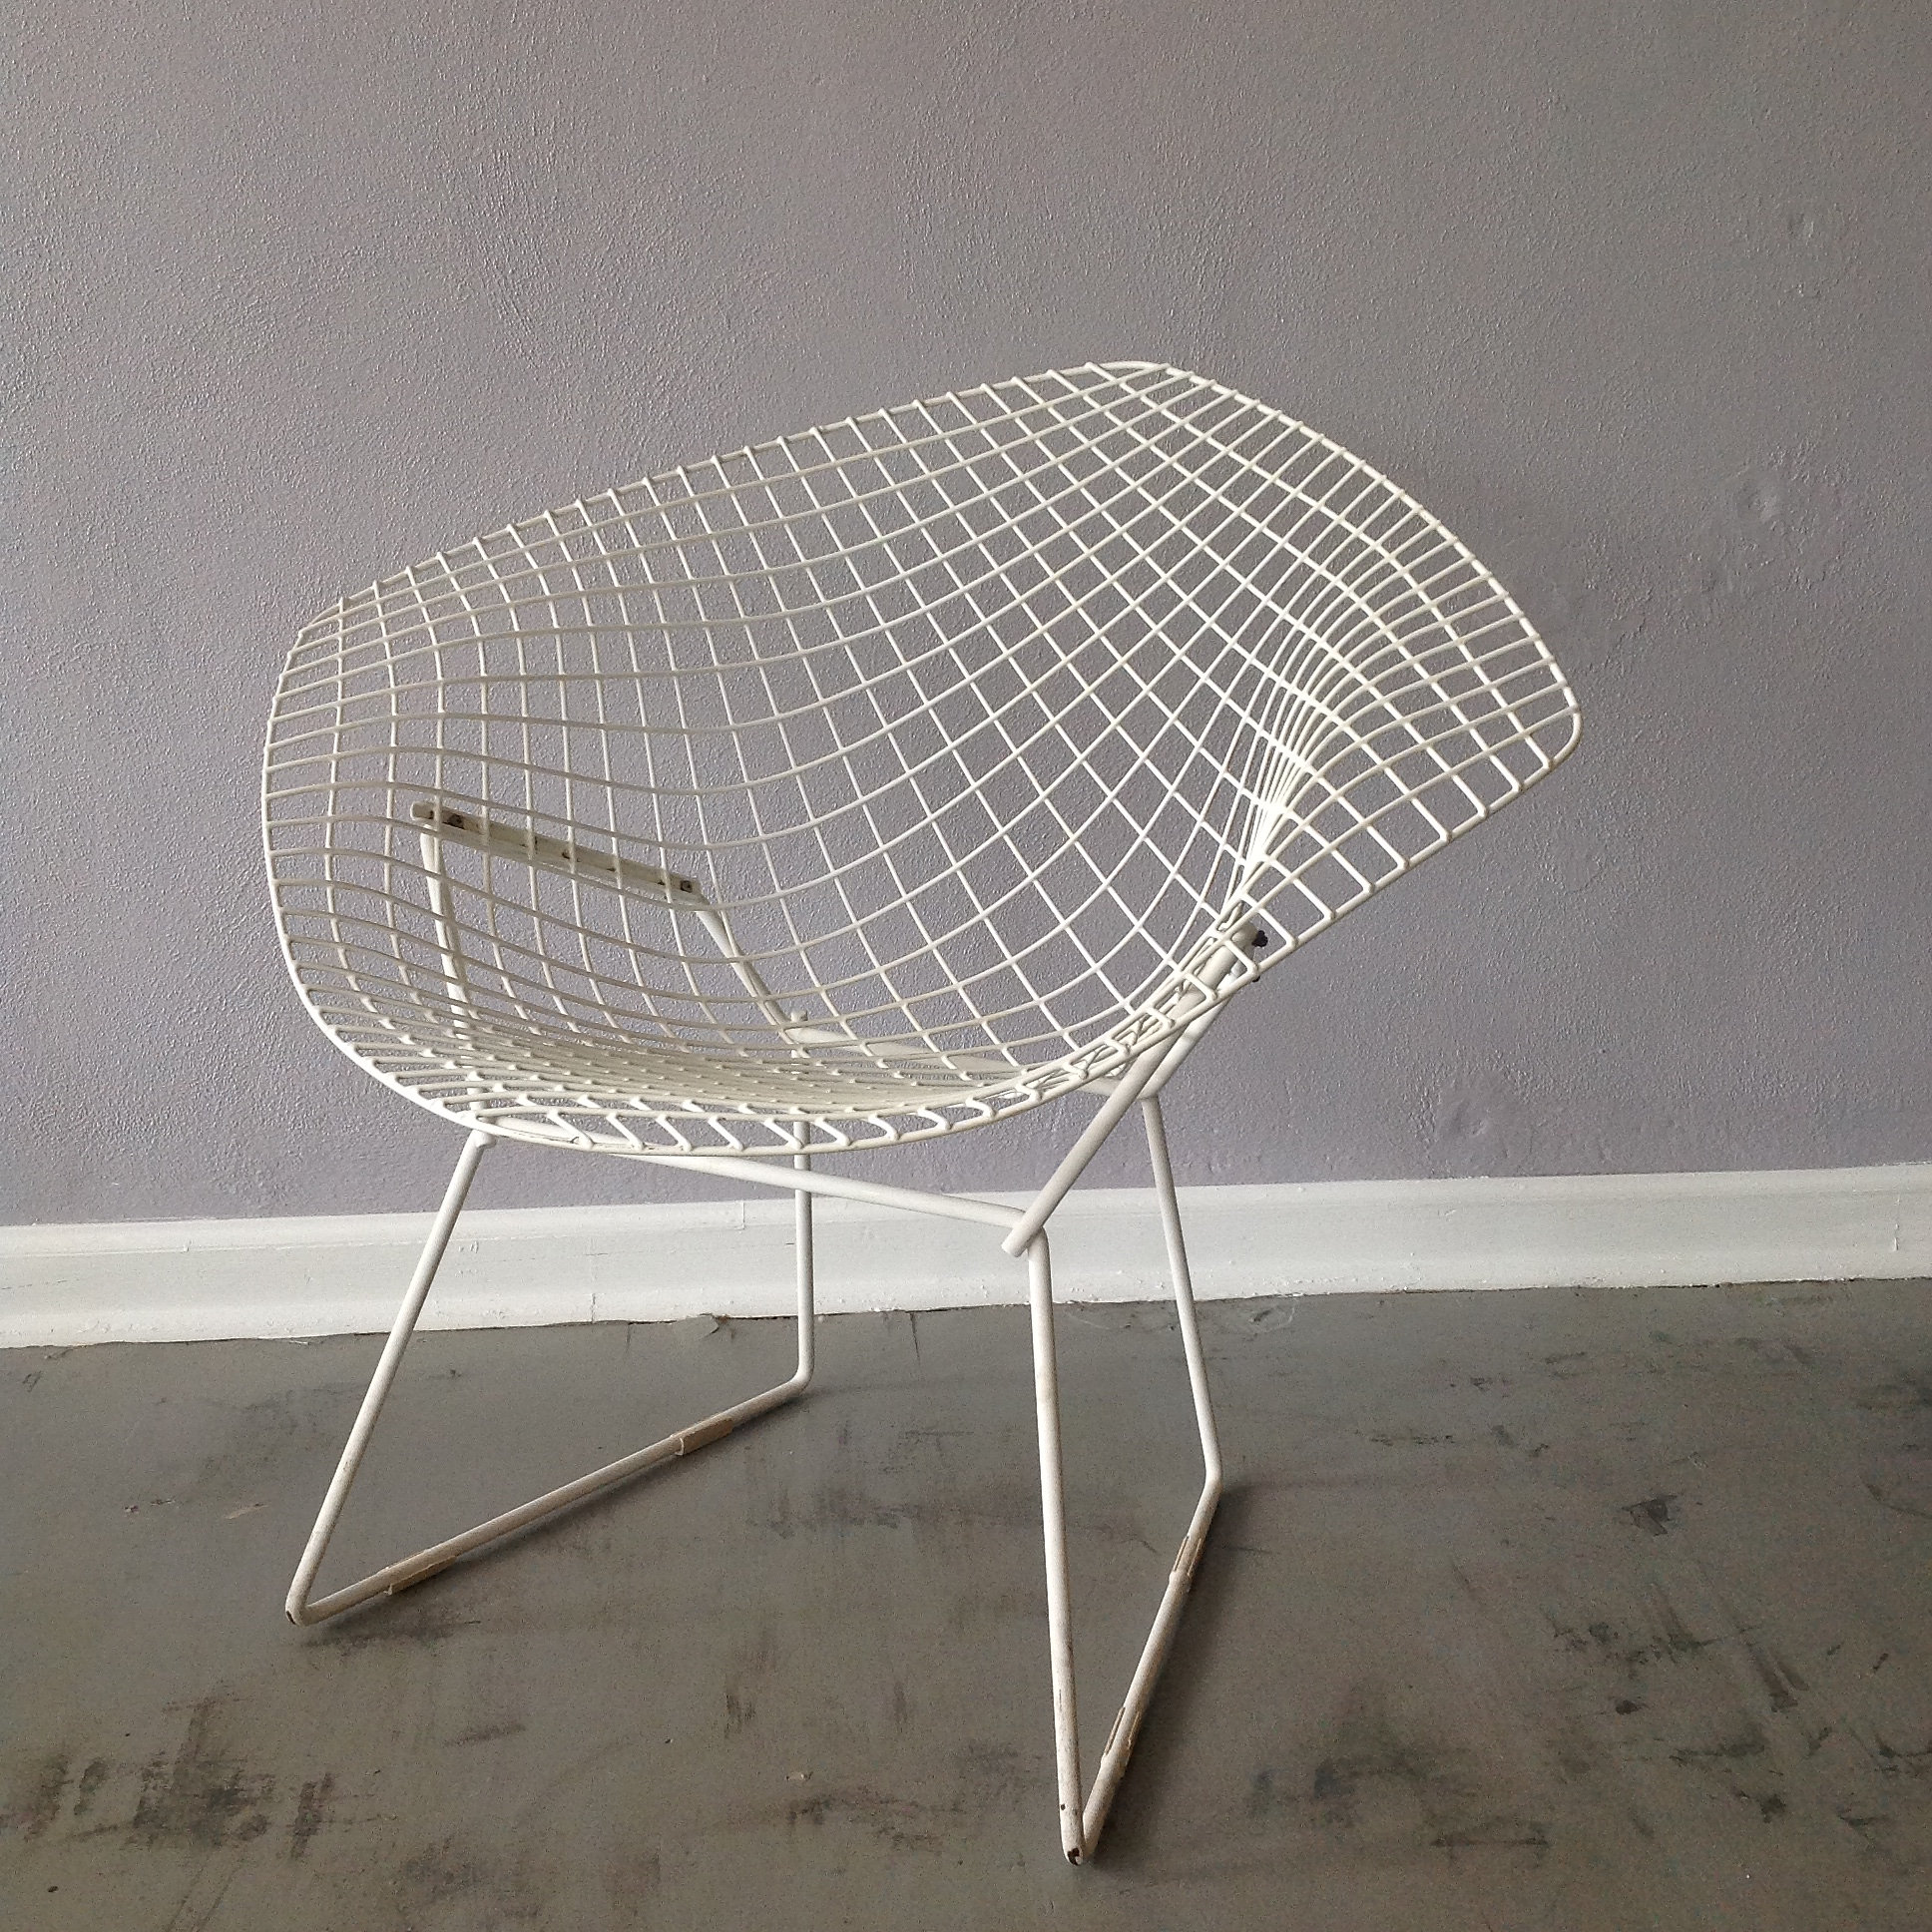 Exceptional Vintage Knoll Bertoia Diamond Chair In Original White. This Classic Design  Does Show Some Age, And A Slight Bit Of Rust.There Are 4 Foot Glides That  Are ...